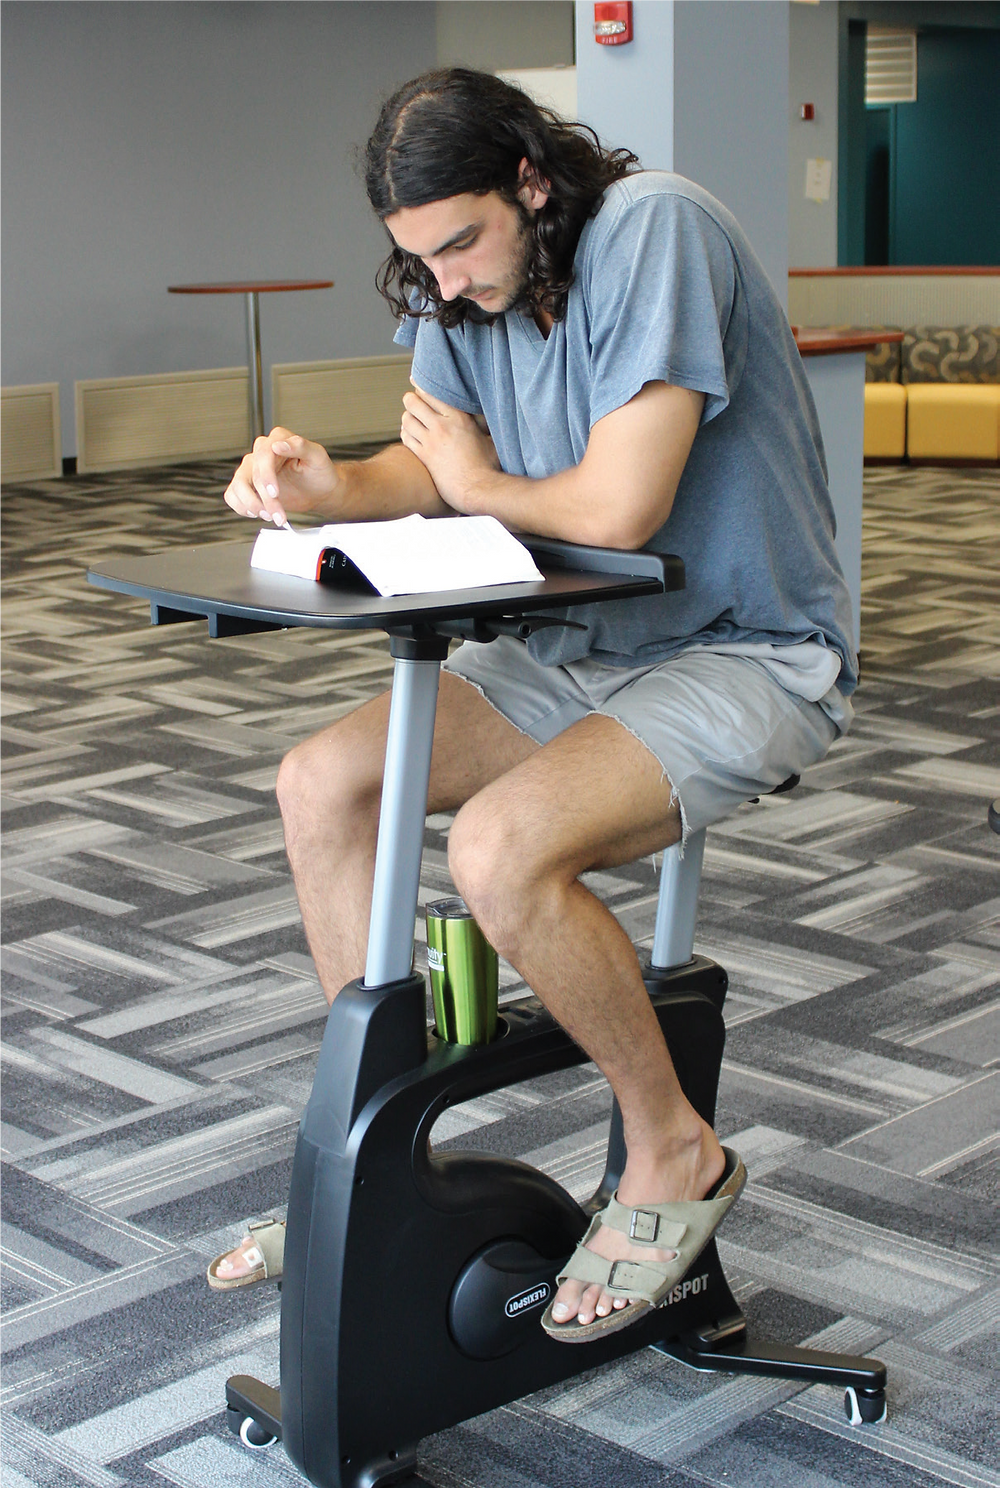 New Stationary Bicycles Included In Library Renovation